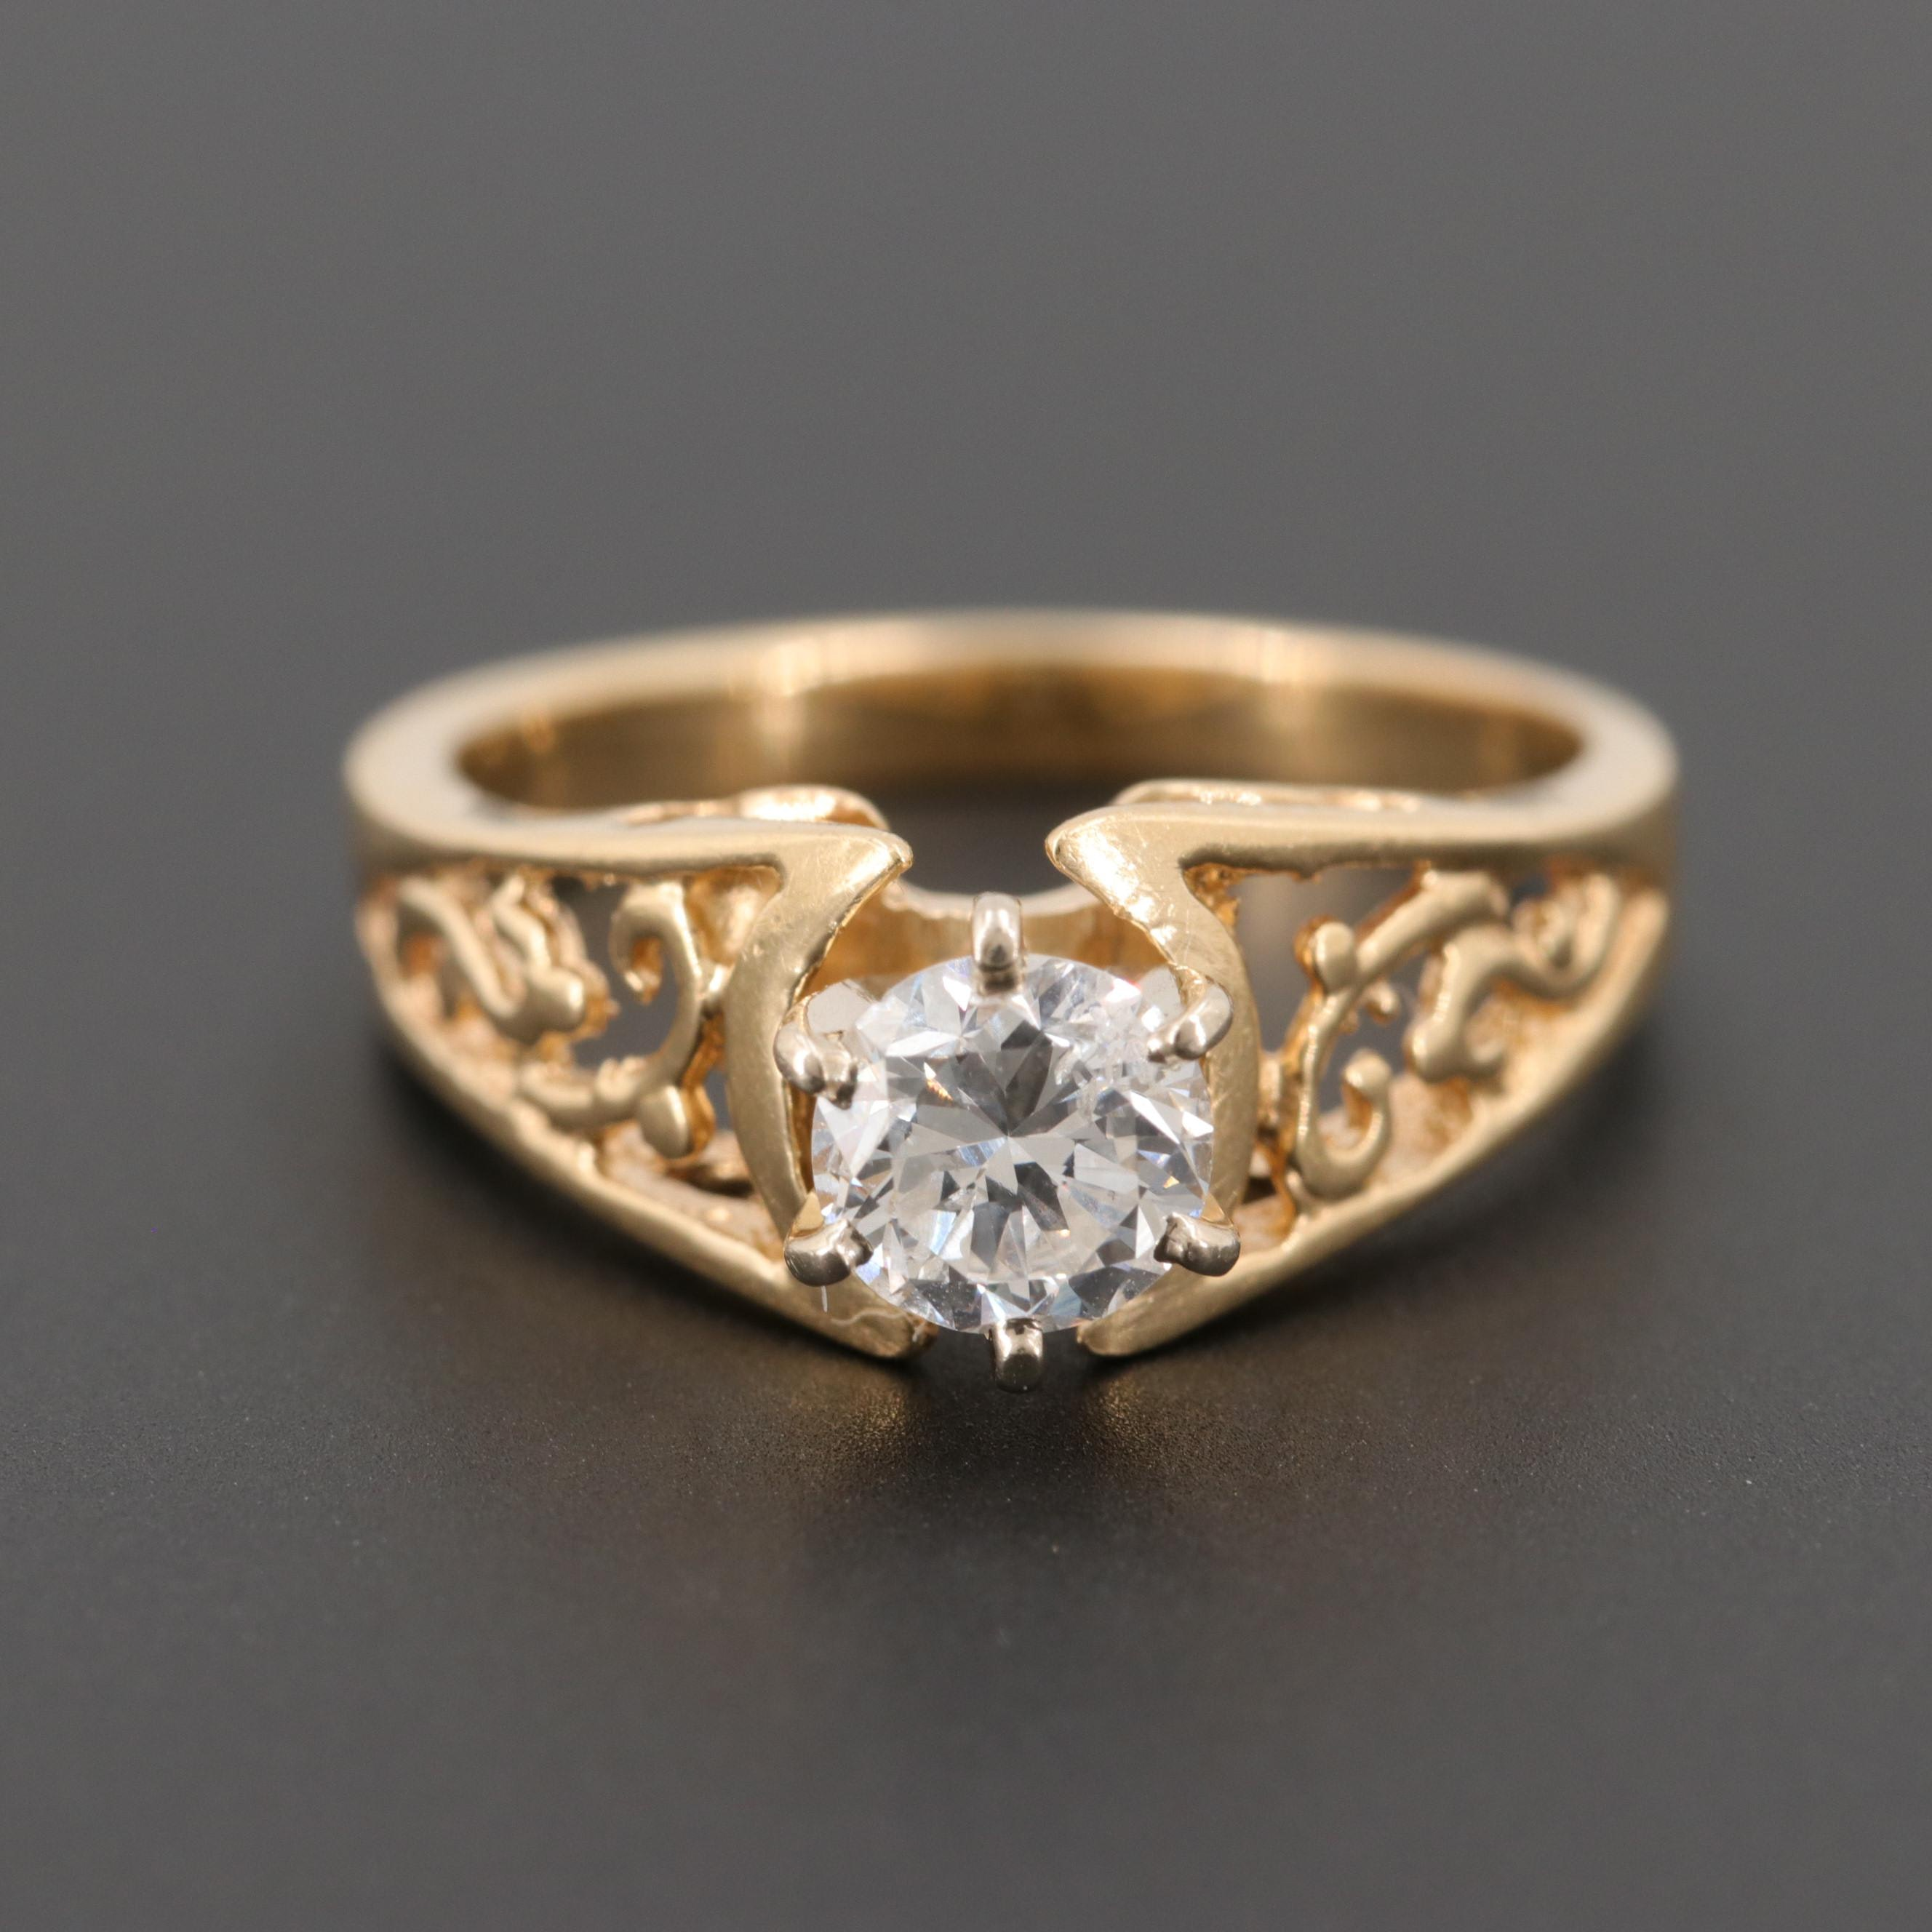 14K Yellow Gold Diamond Ring with White Gold Setting